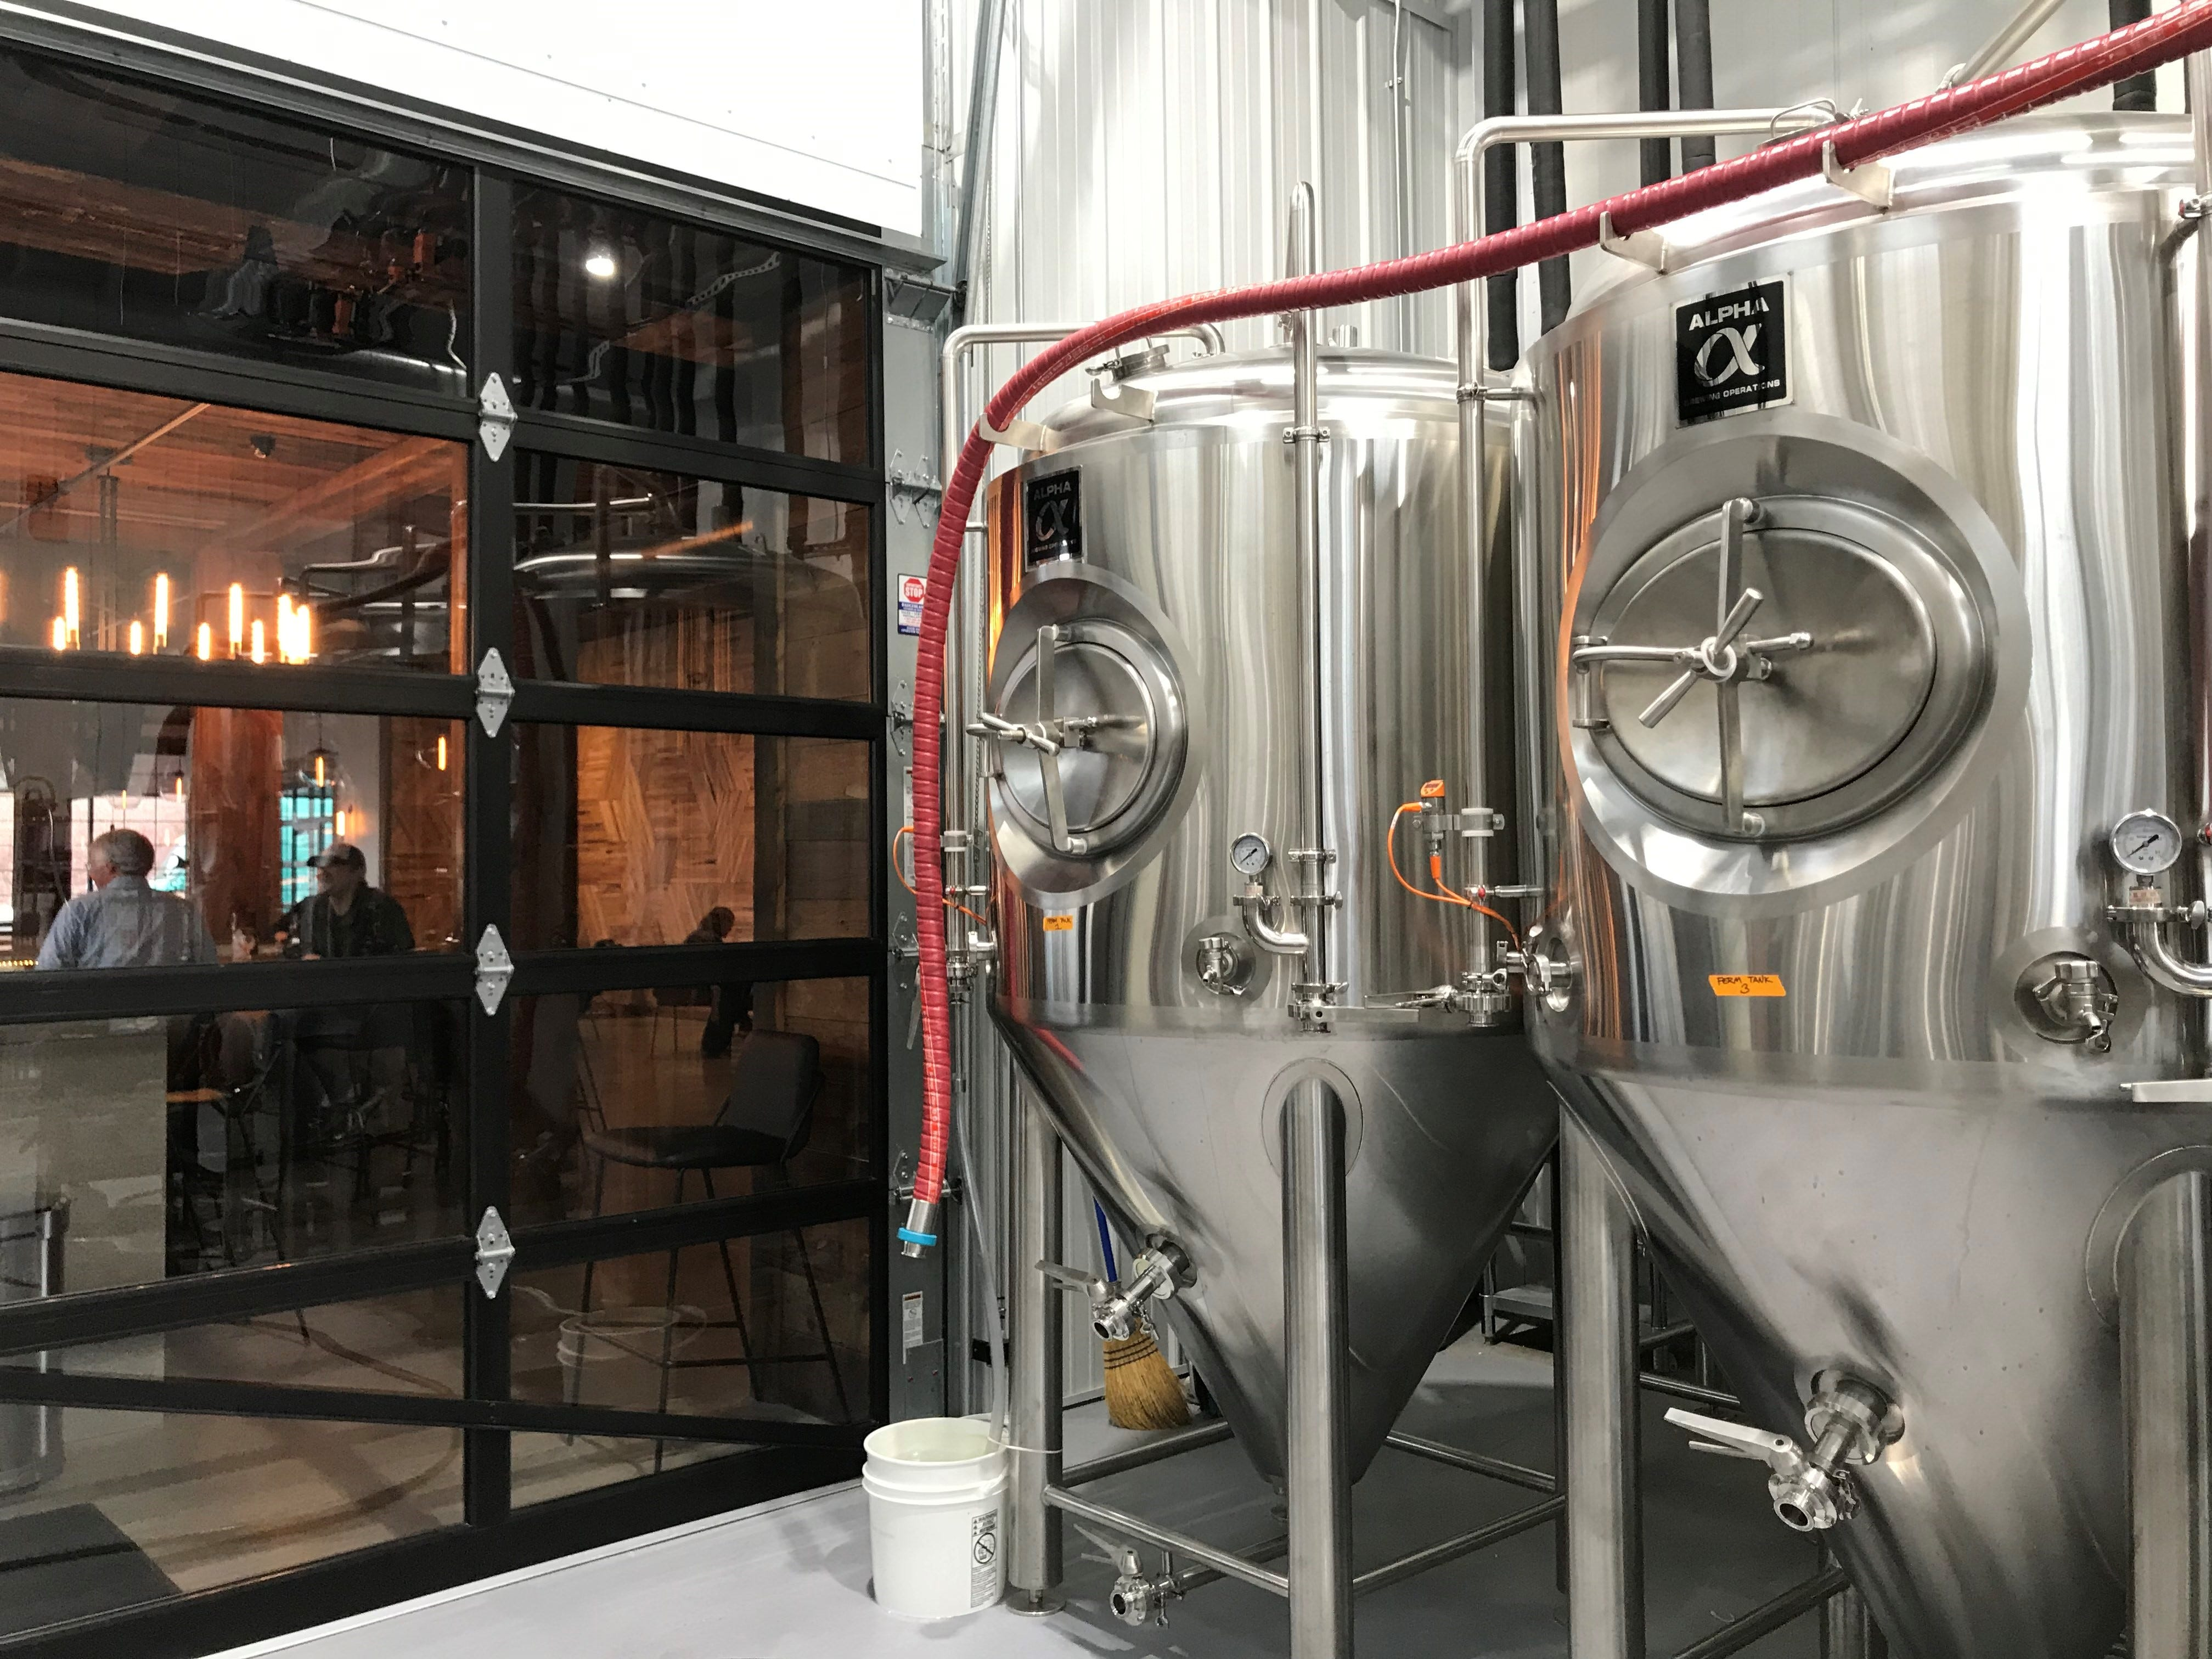 The back brewing room is now in full use at Mosinee Brewing Company as they begin brewing their own recipes.